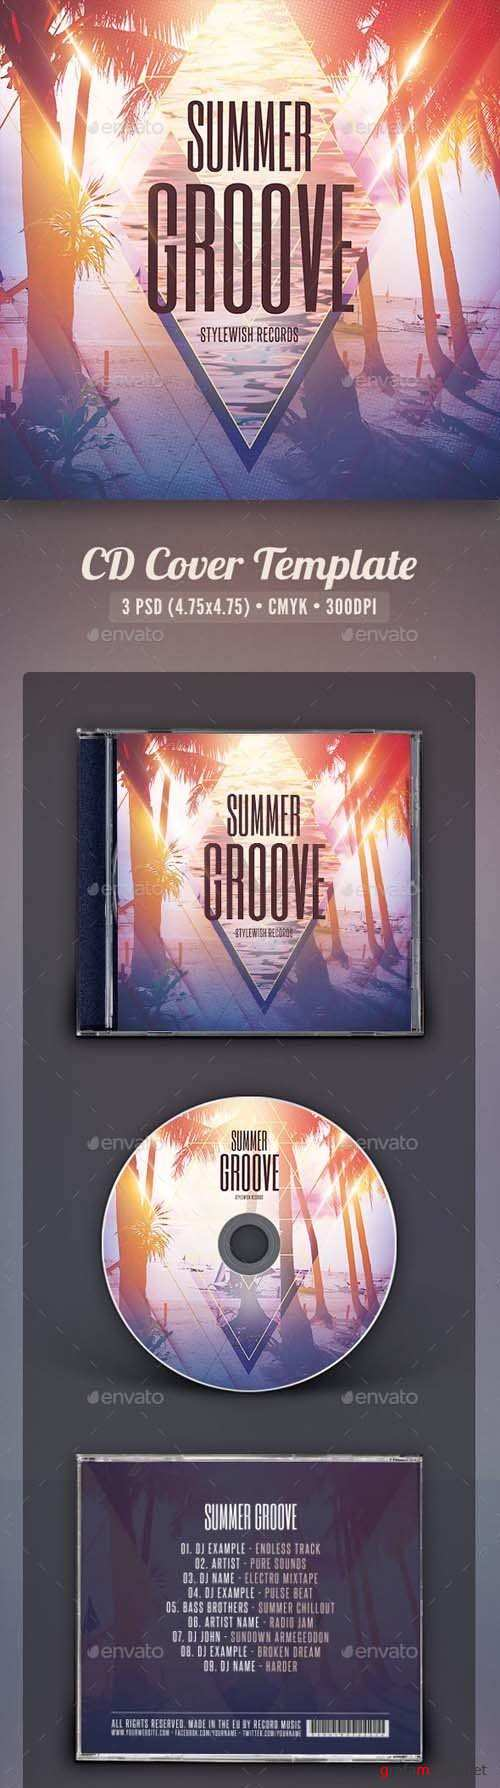 Summer Groove CD Cover Artwork 16437807